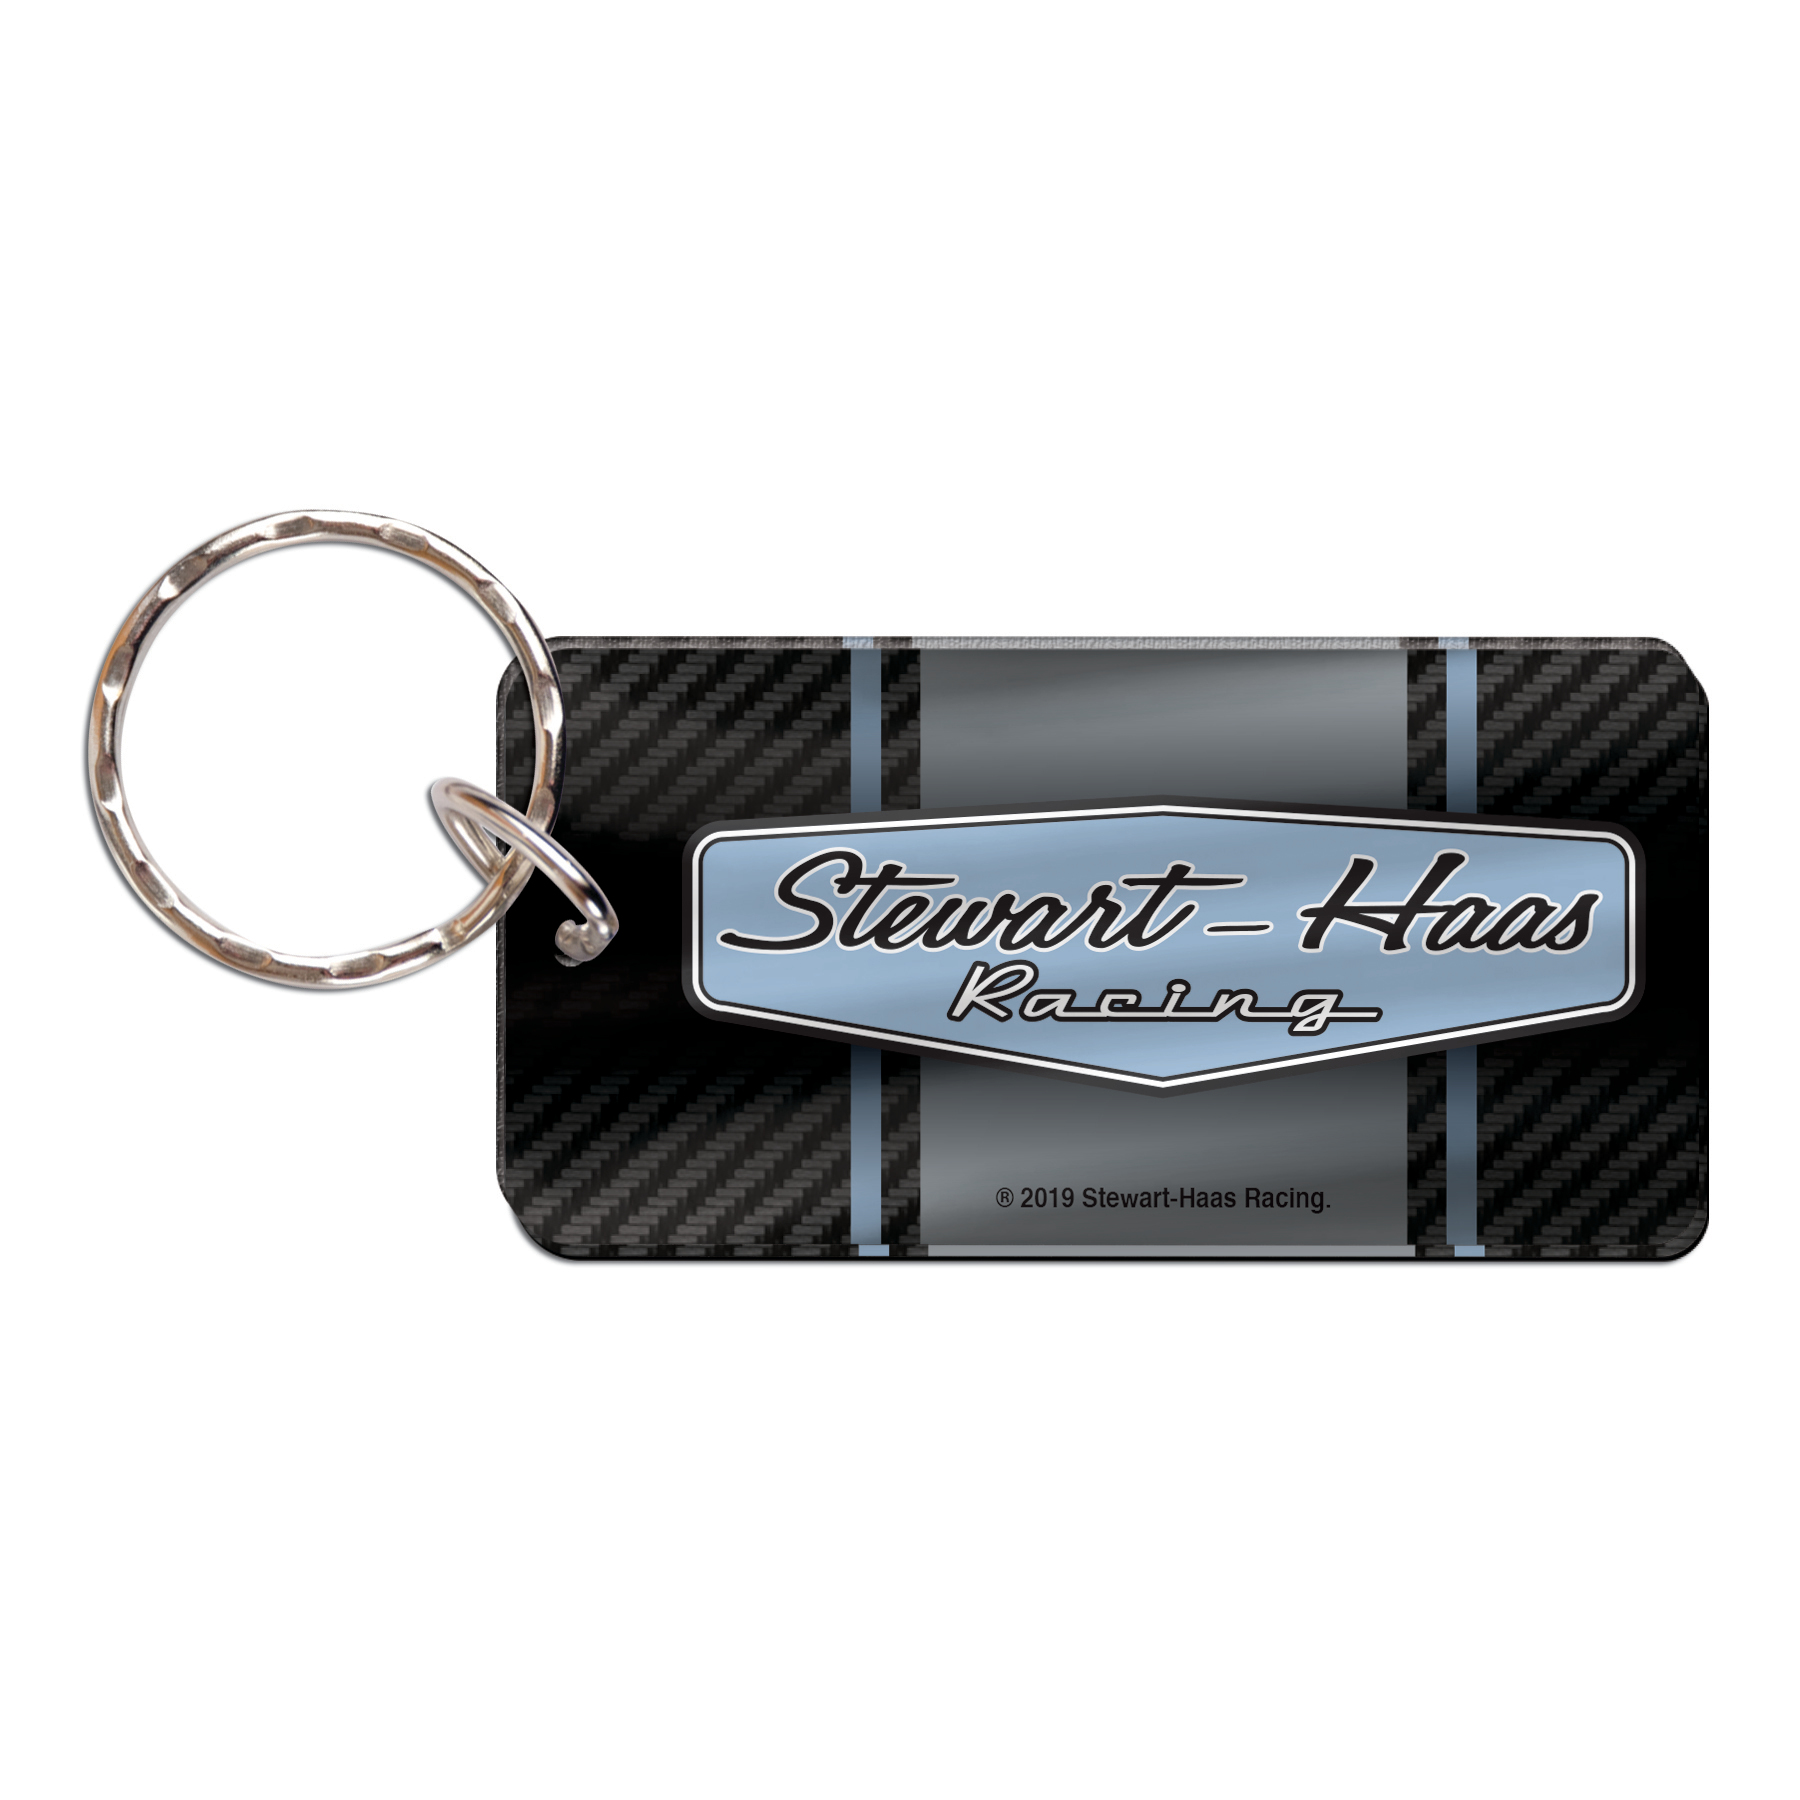 Exclusive Stewart-Haas Racing Carbon Key Ring